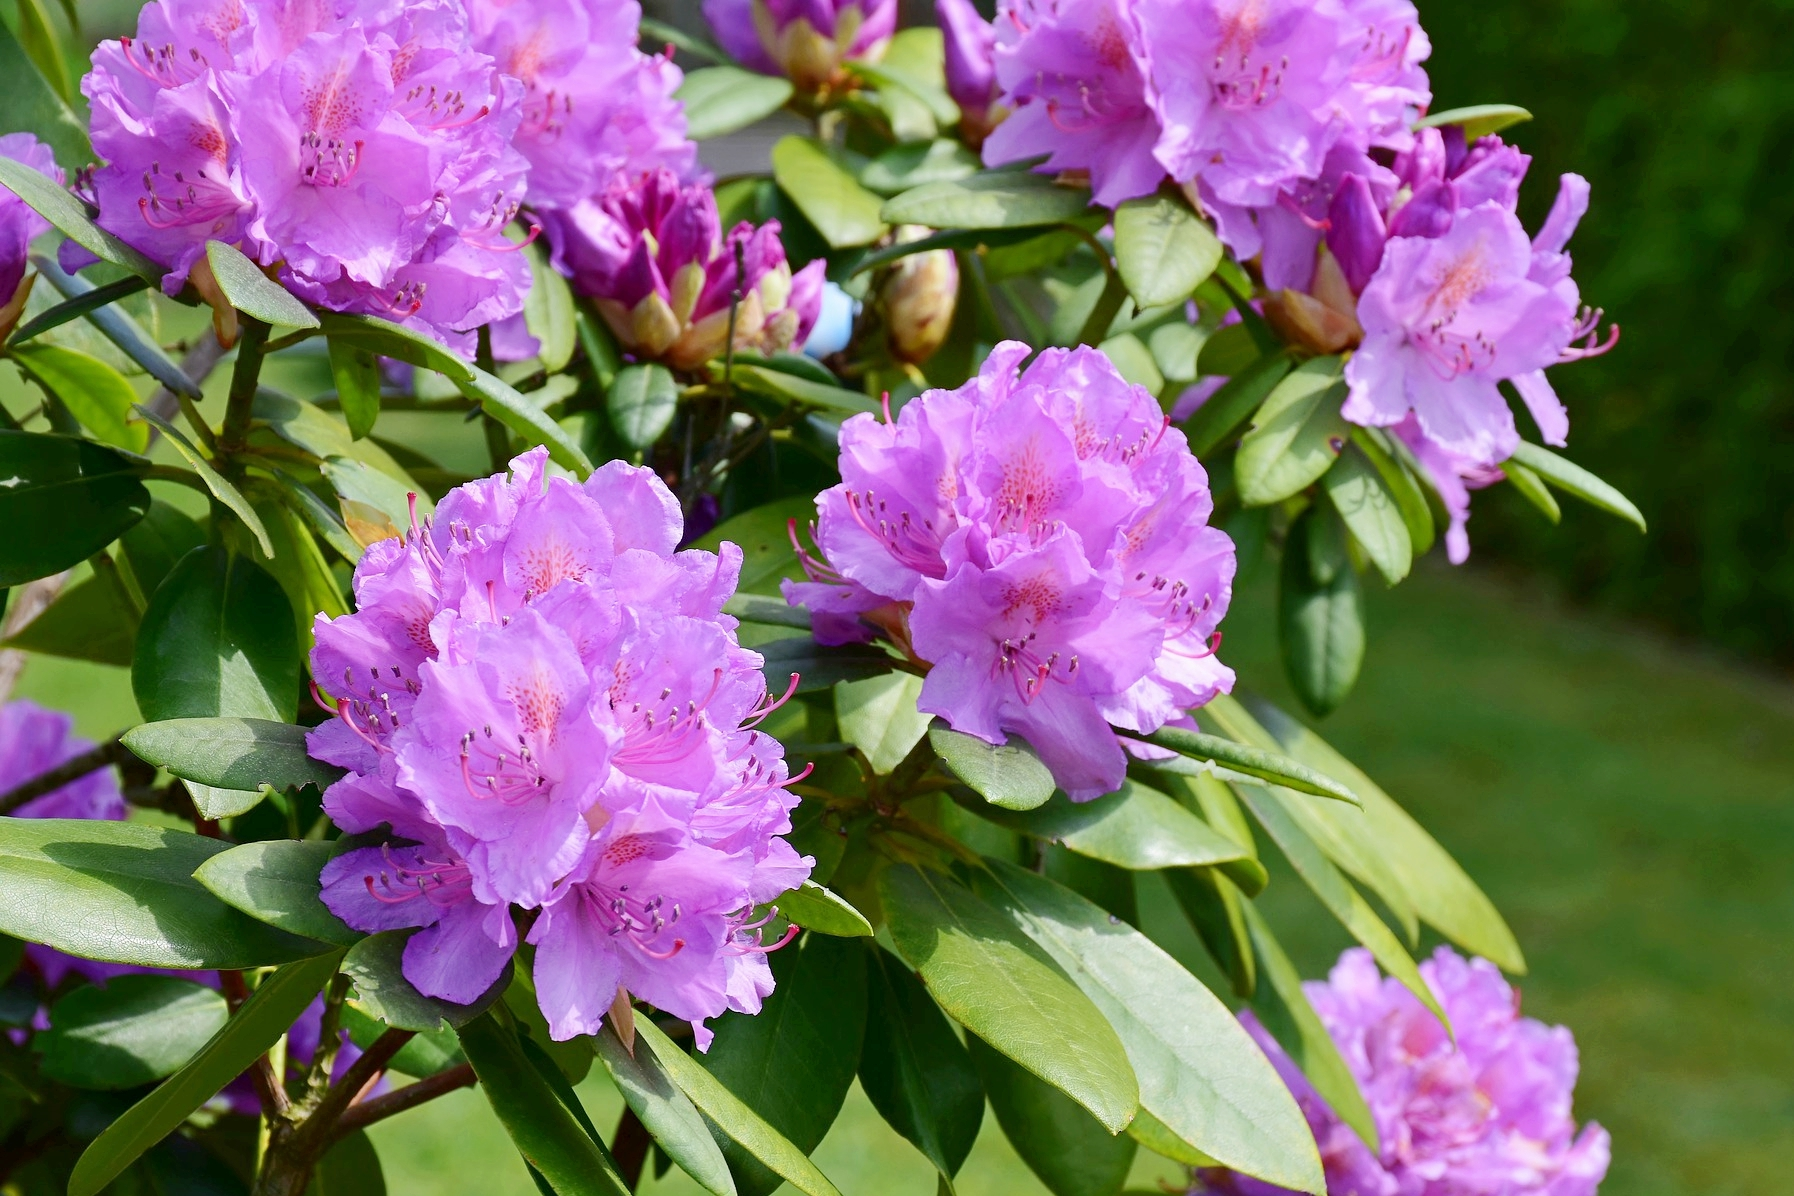 Rhododendrons Rhododendron plant, Plants, Planting flowers